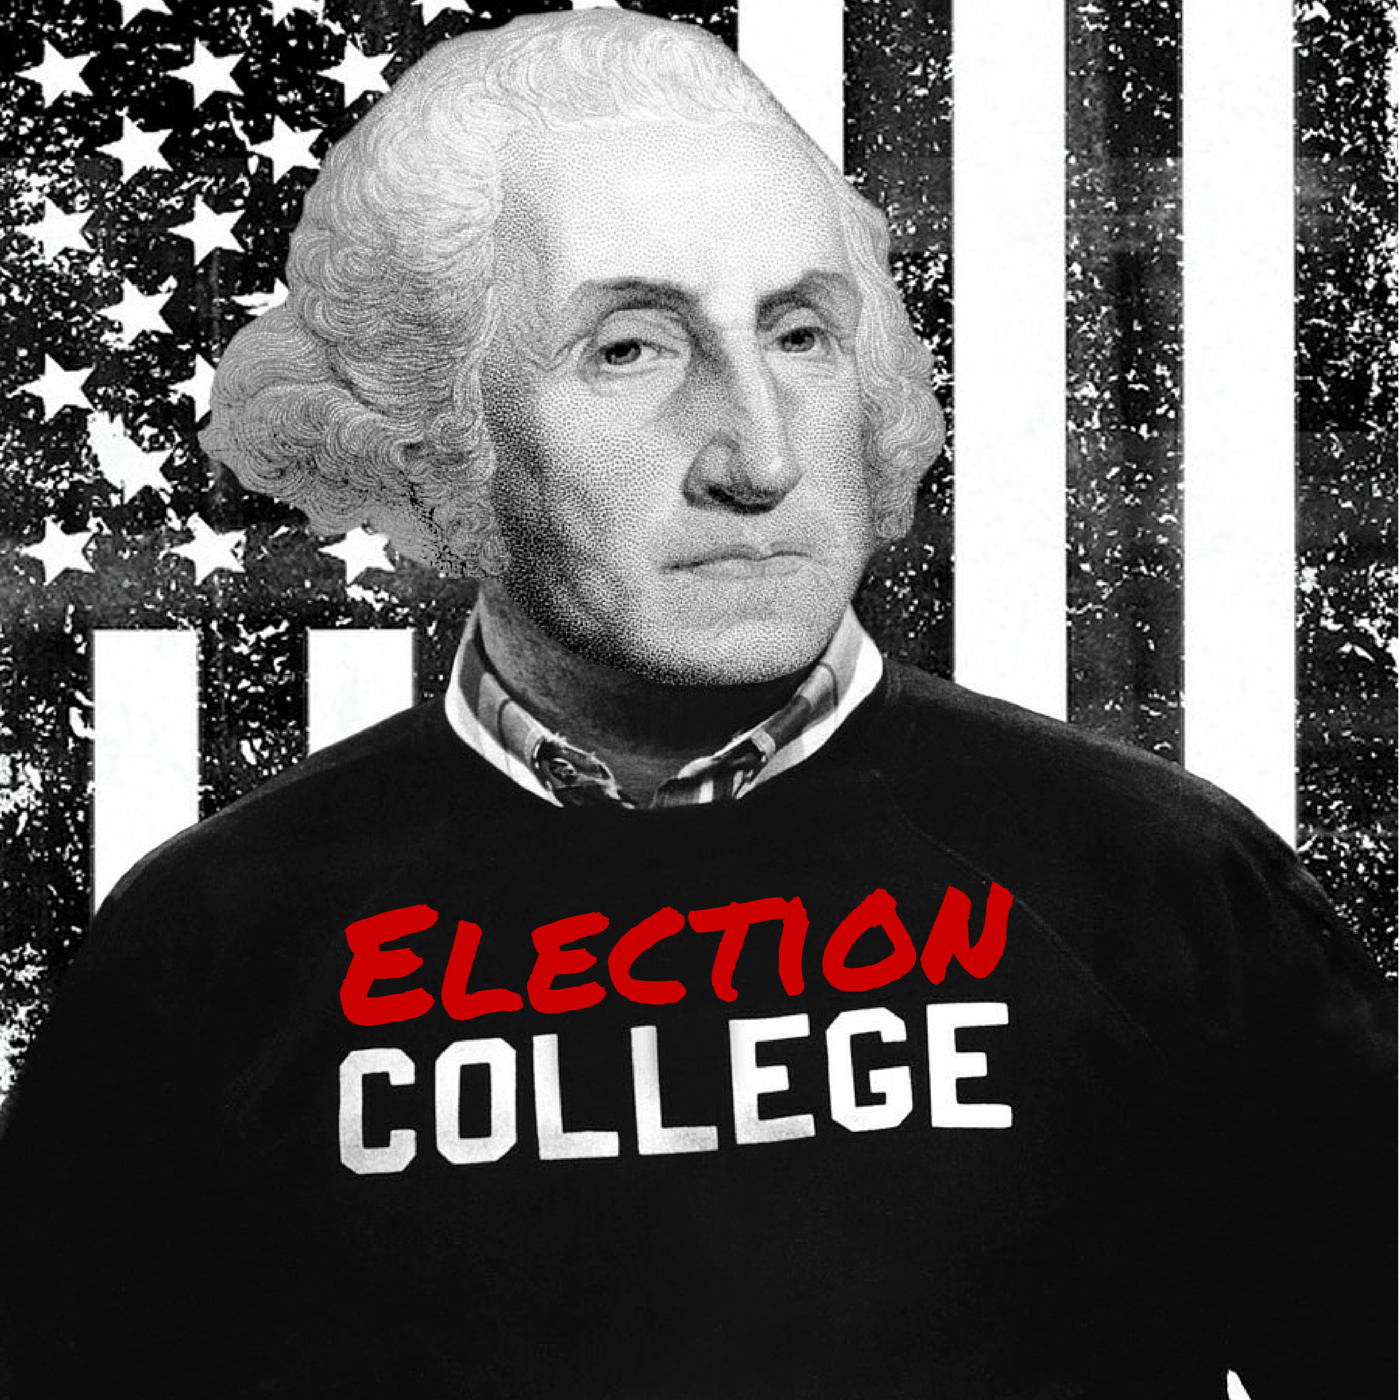 Edwin Stanton - Part 1 | Episode #234 | Election College: United States Presidential Election History